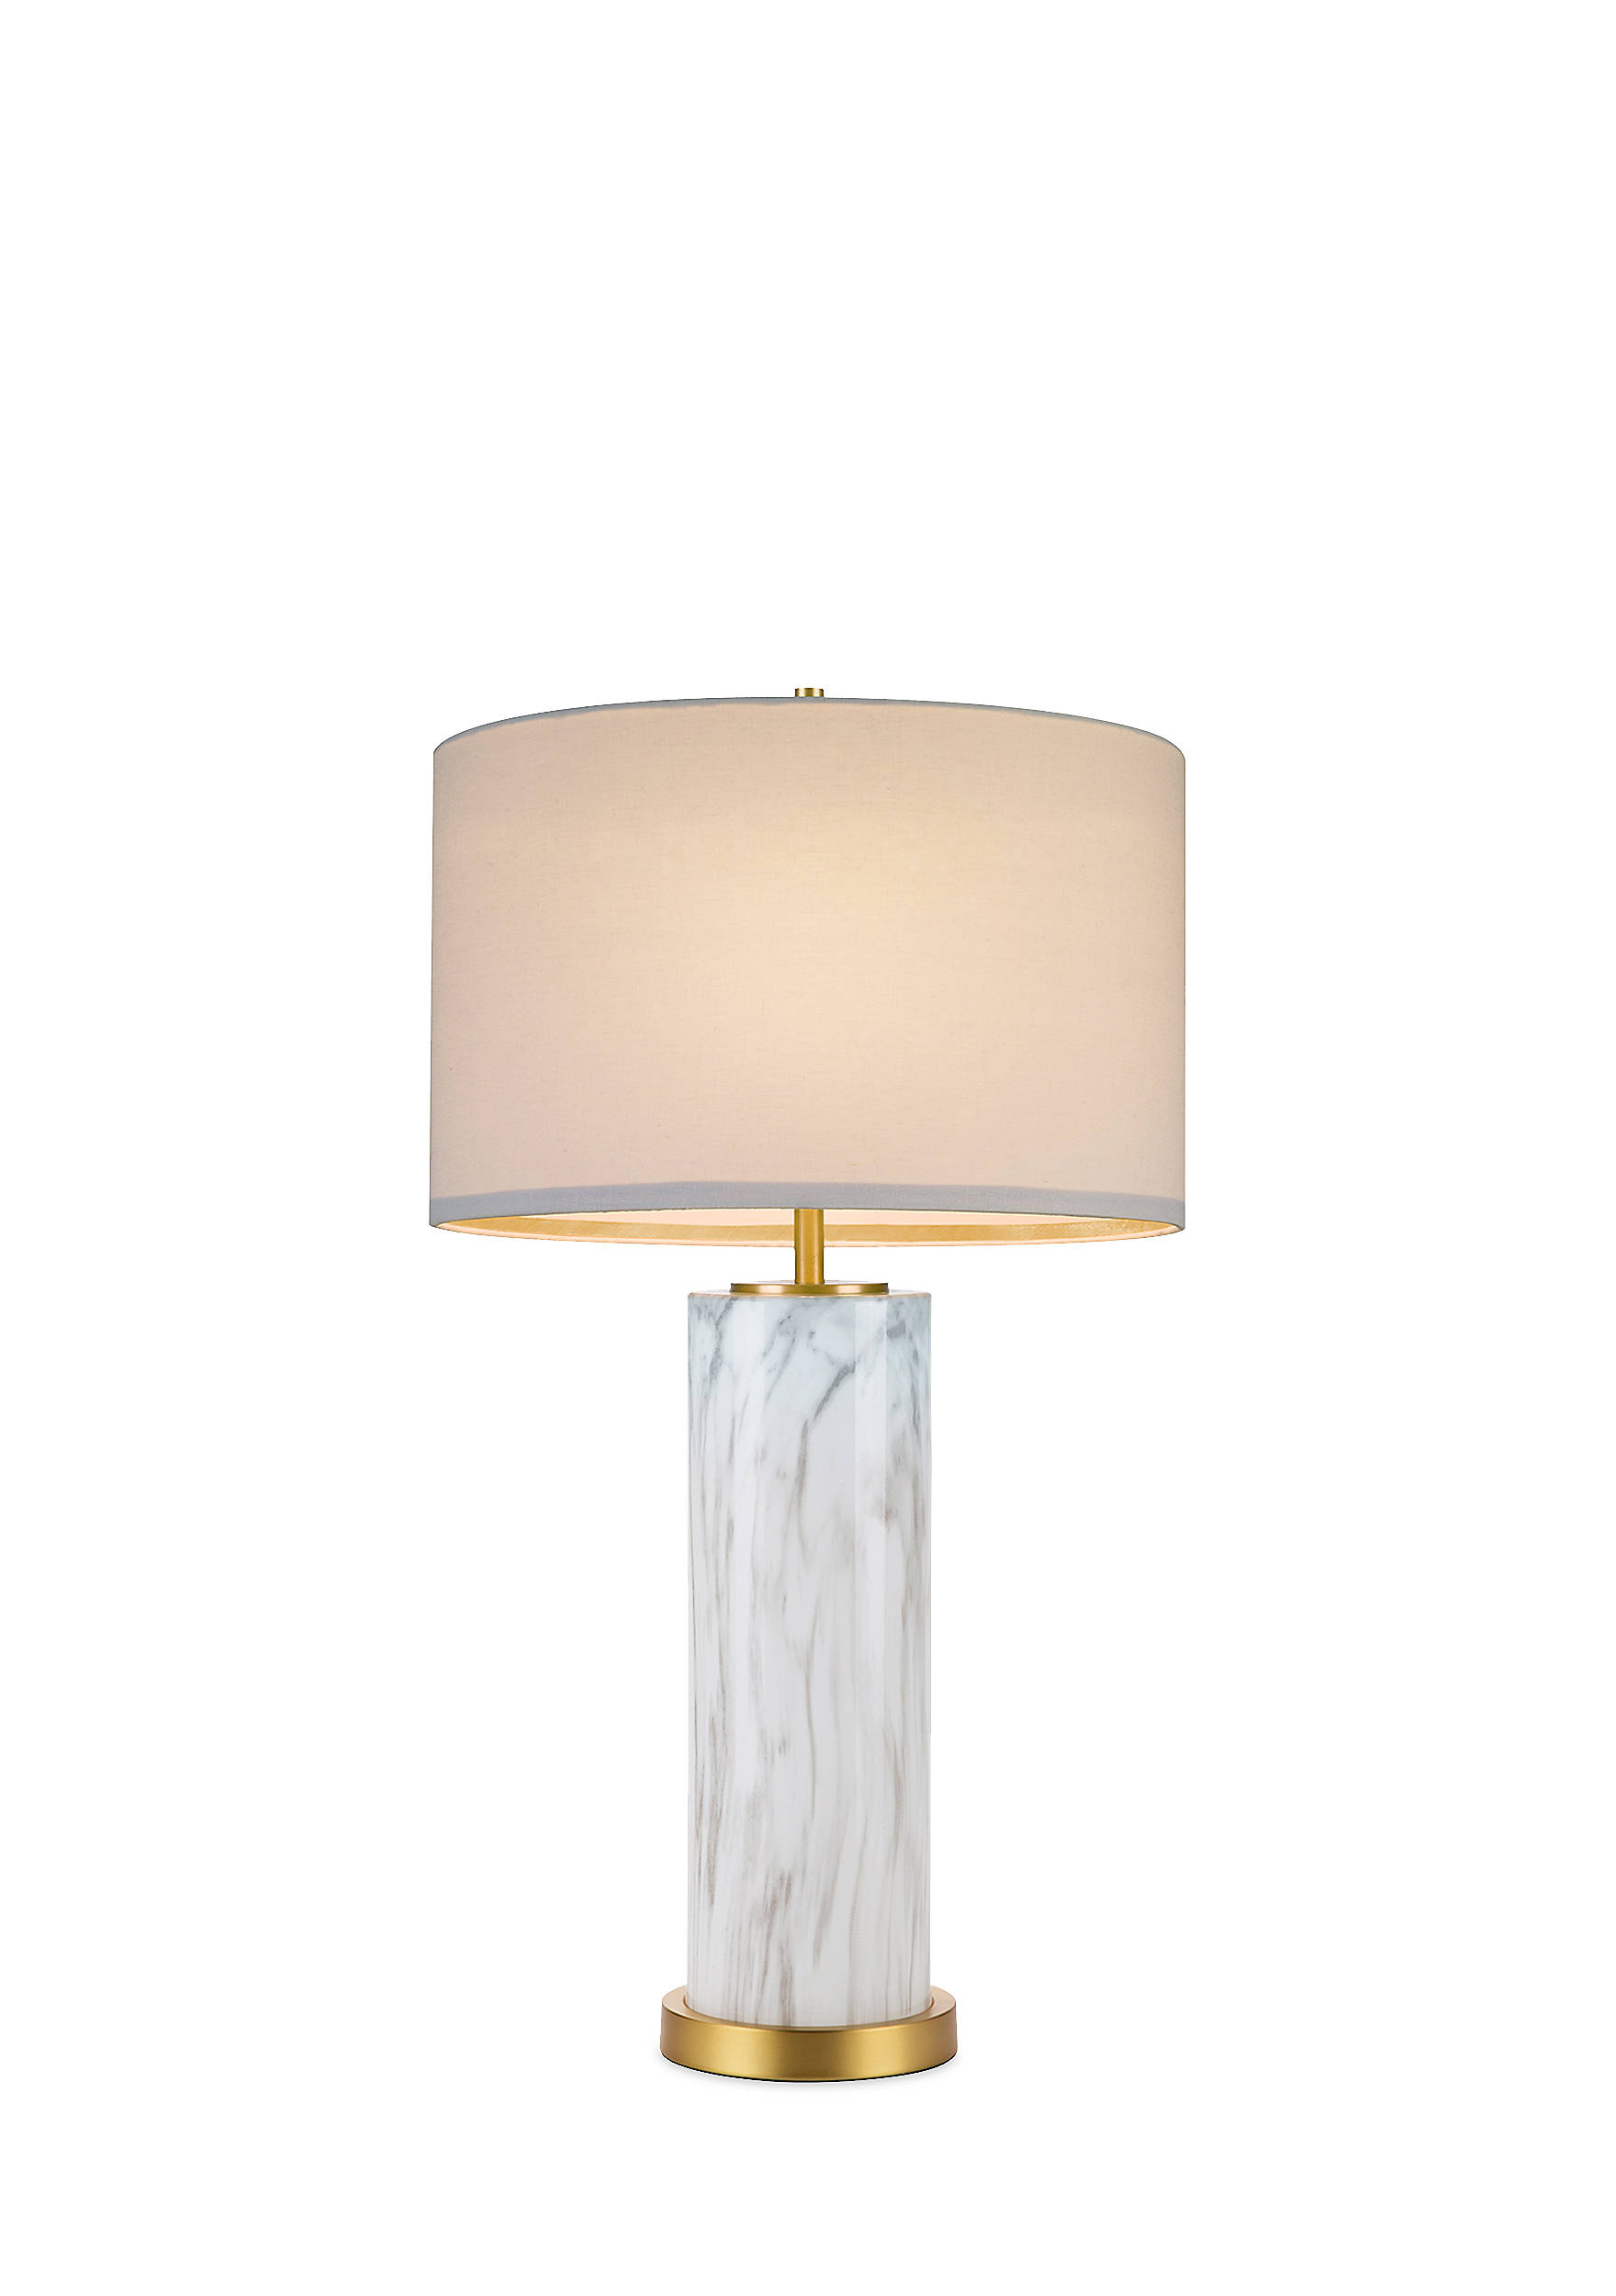 Floor lamps table lamps desk bedside lamps belk marble column table lamp geotapseo Images